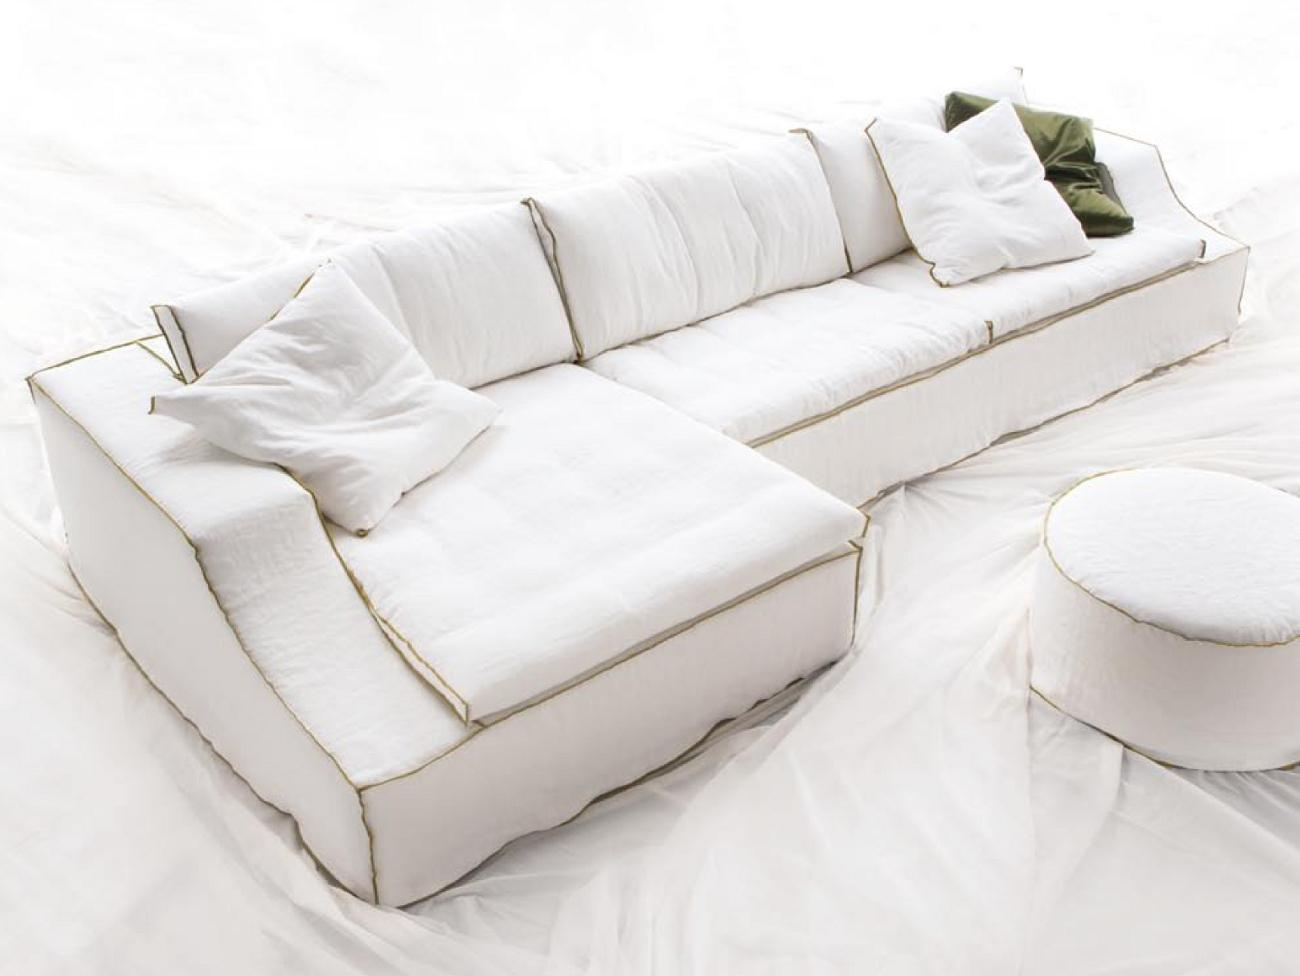 Furniture Home: The Most Popular Shabby Chic Sectional Sofa 60 With Regard To Shabby Chic Sectional Sofas (View 5 of 20)